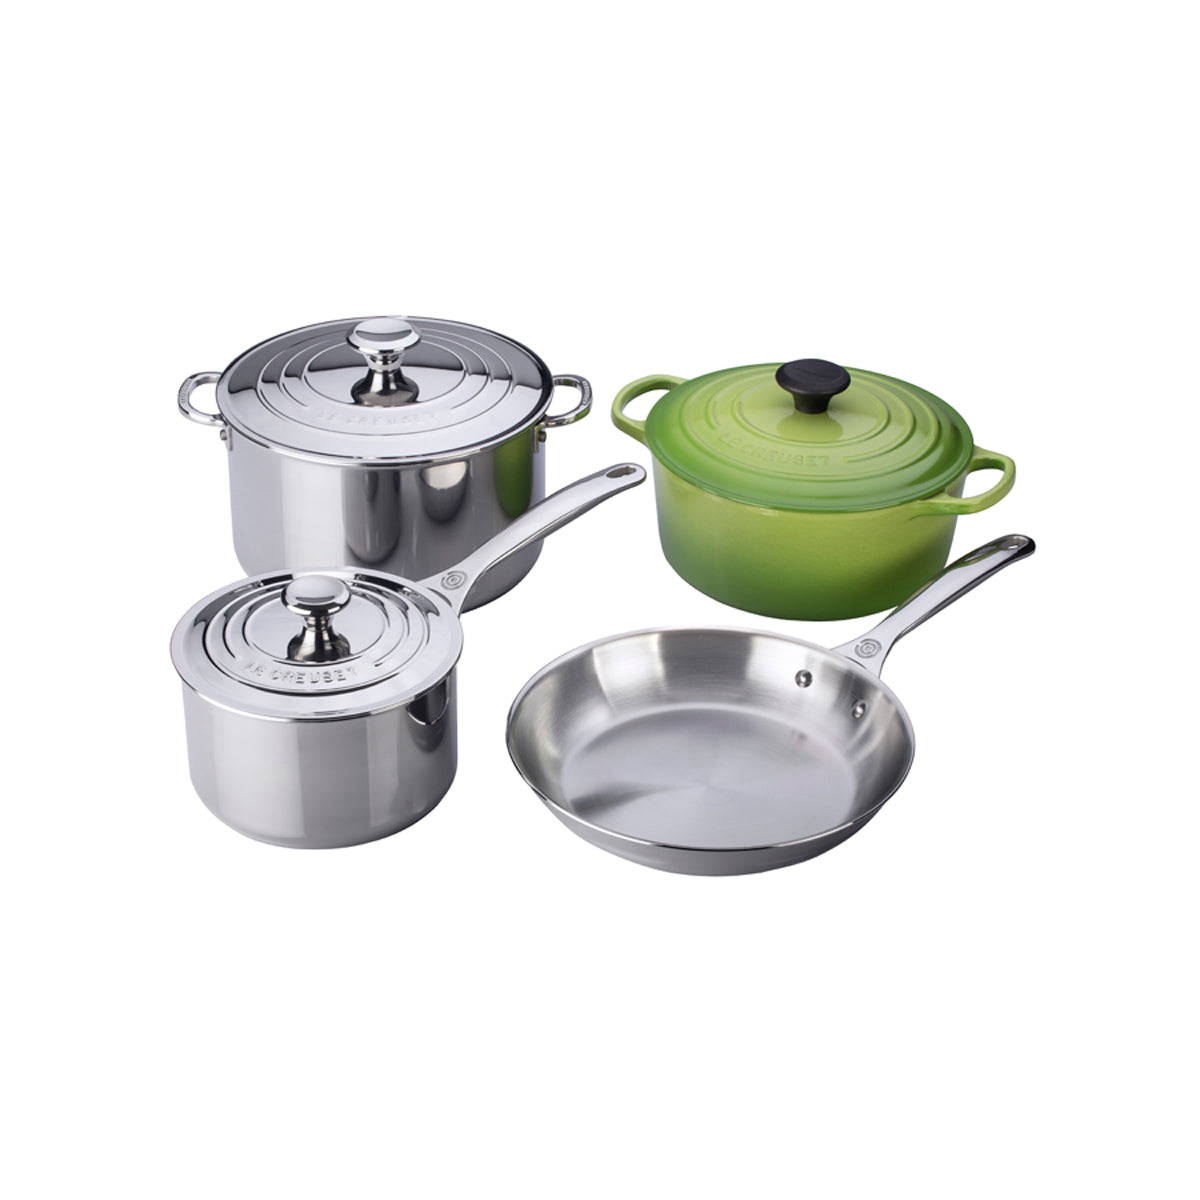 Le Creuset 7PC Stainless Steel & Enameled Cast Iron Cookware Set - Palm